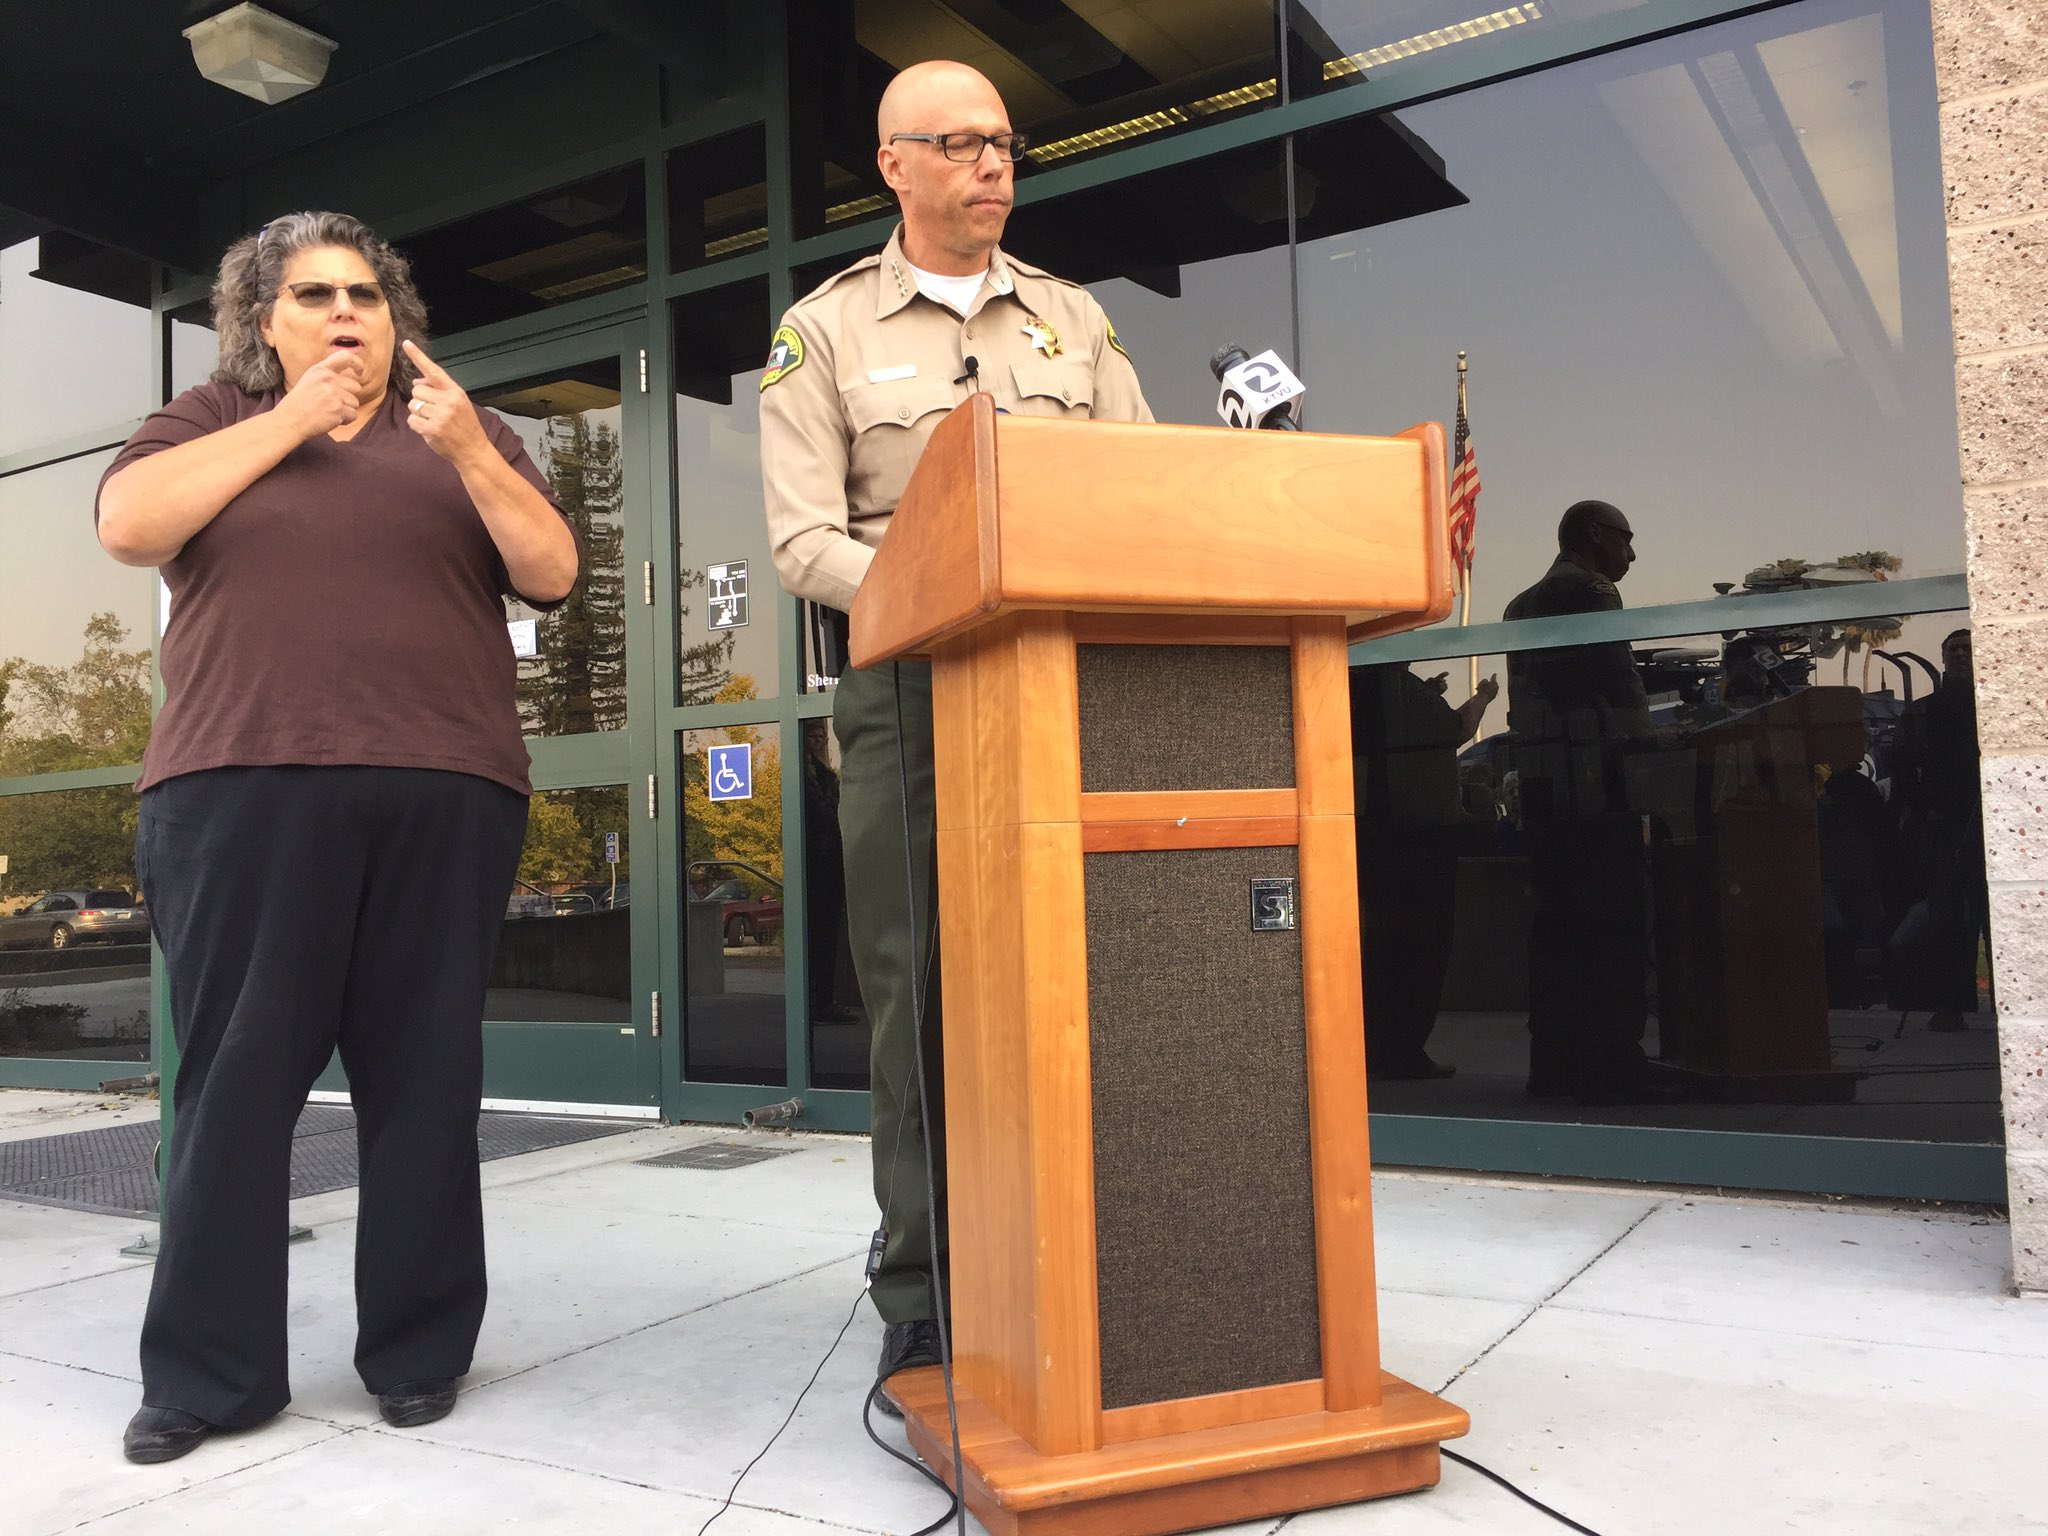 Sonoma County Sheriff Rob Giordano speaks to reporters. (Phil Willon / Los Angeles Times)